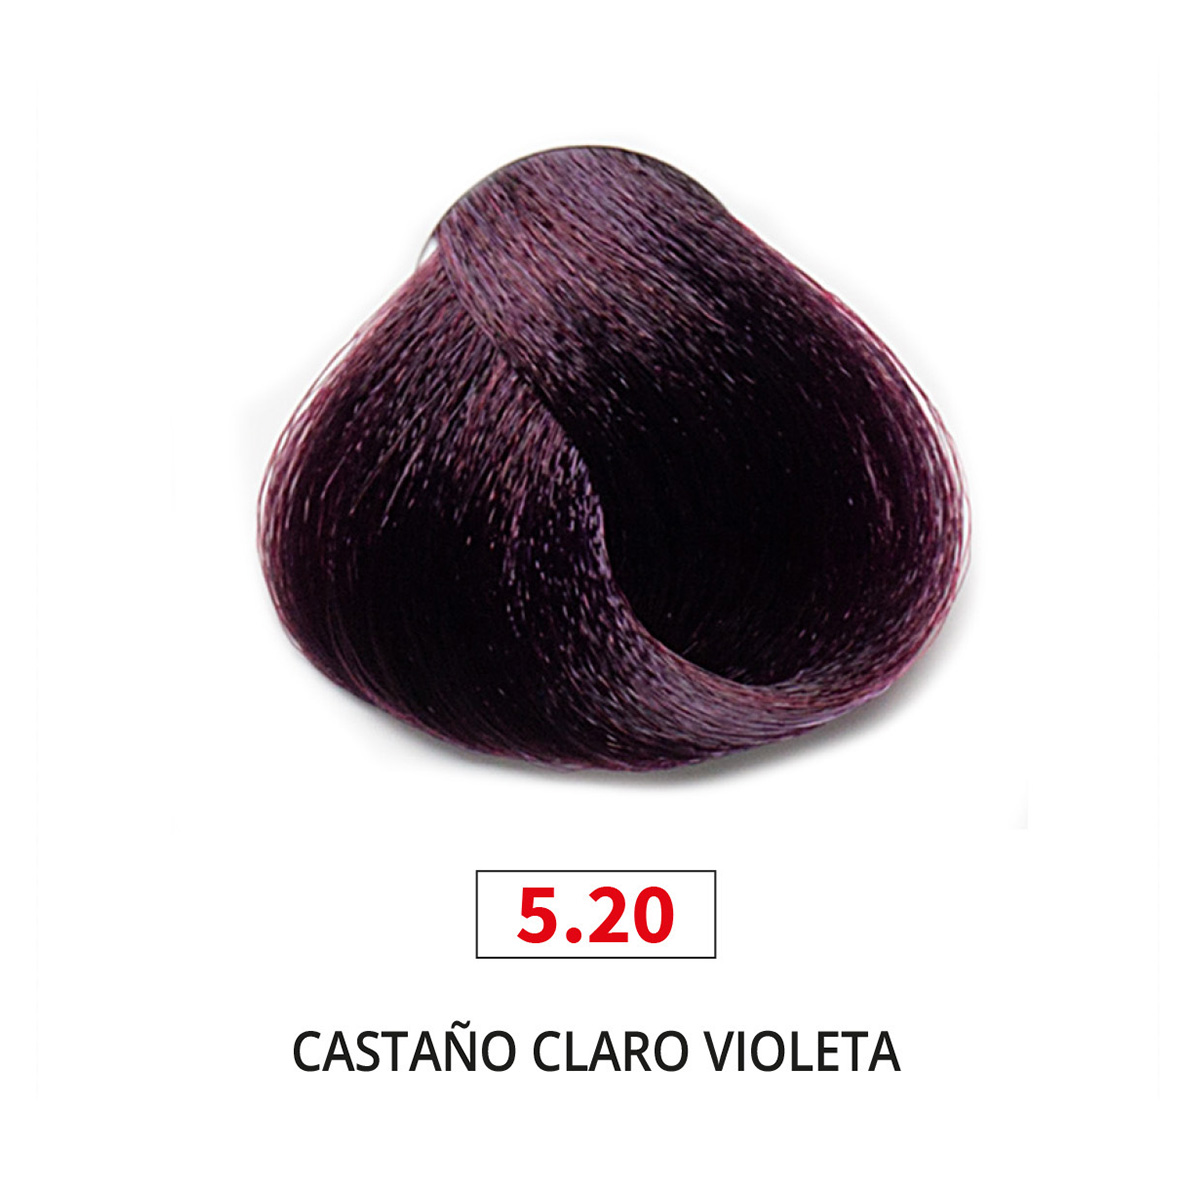 Violeta 5.20 - Yanguas Professional